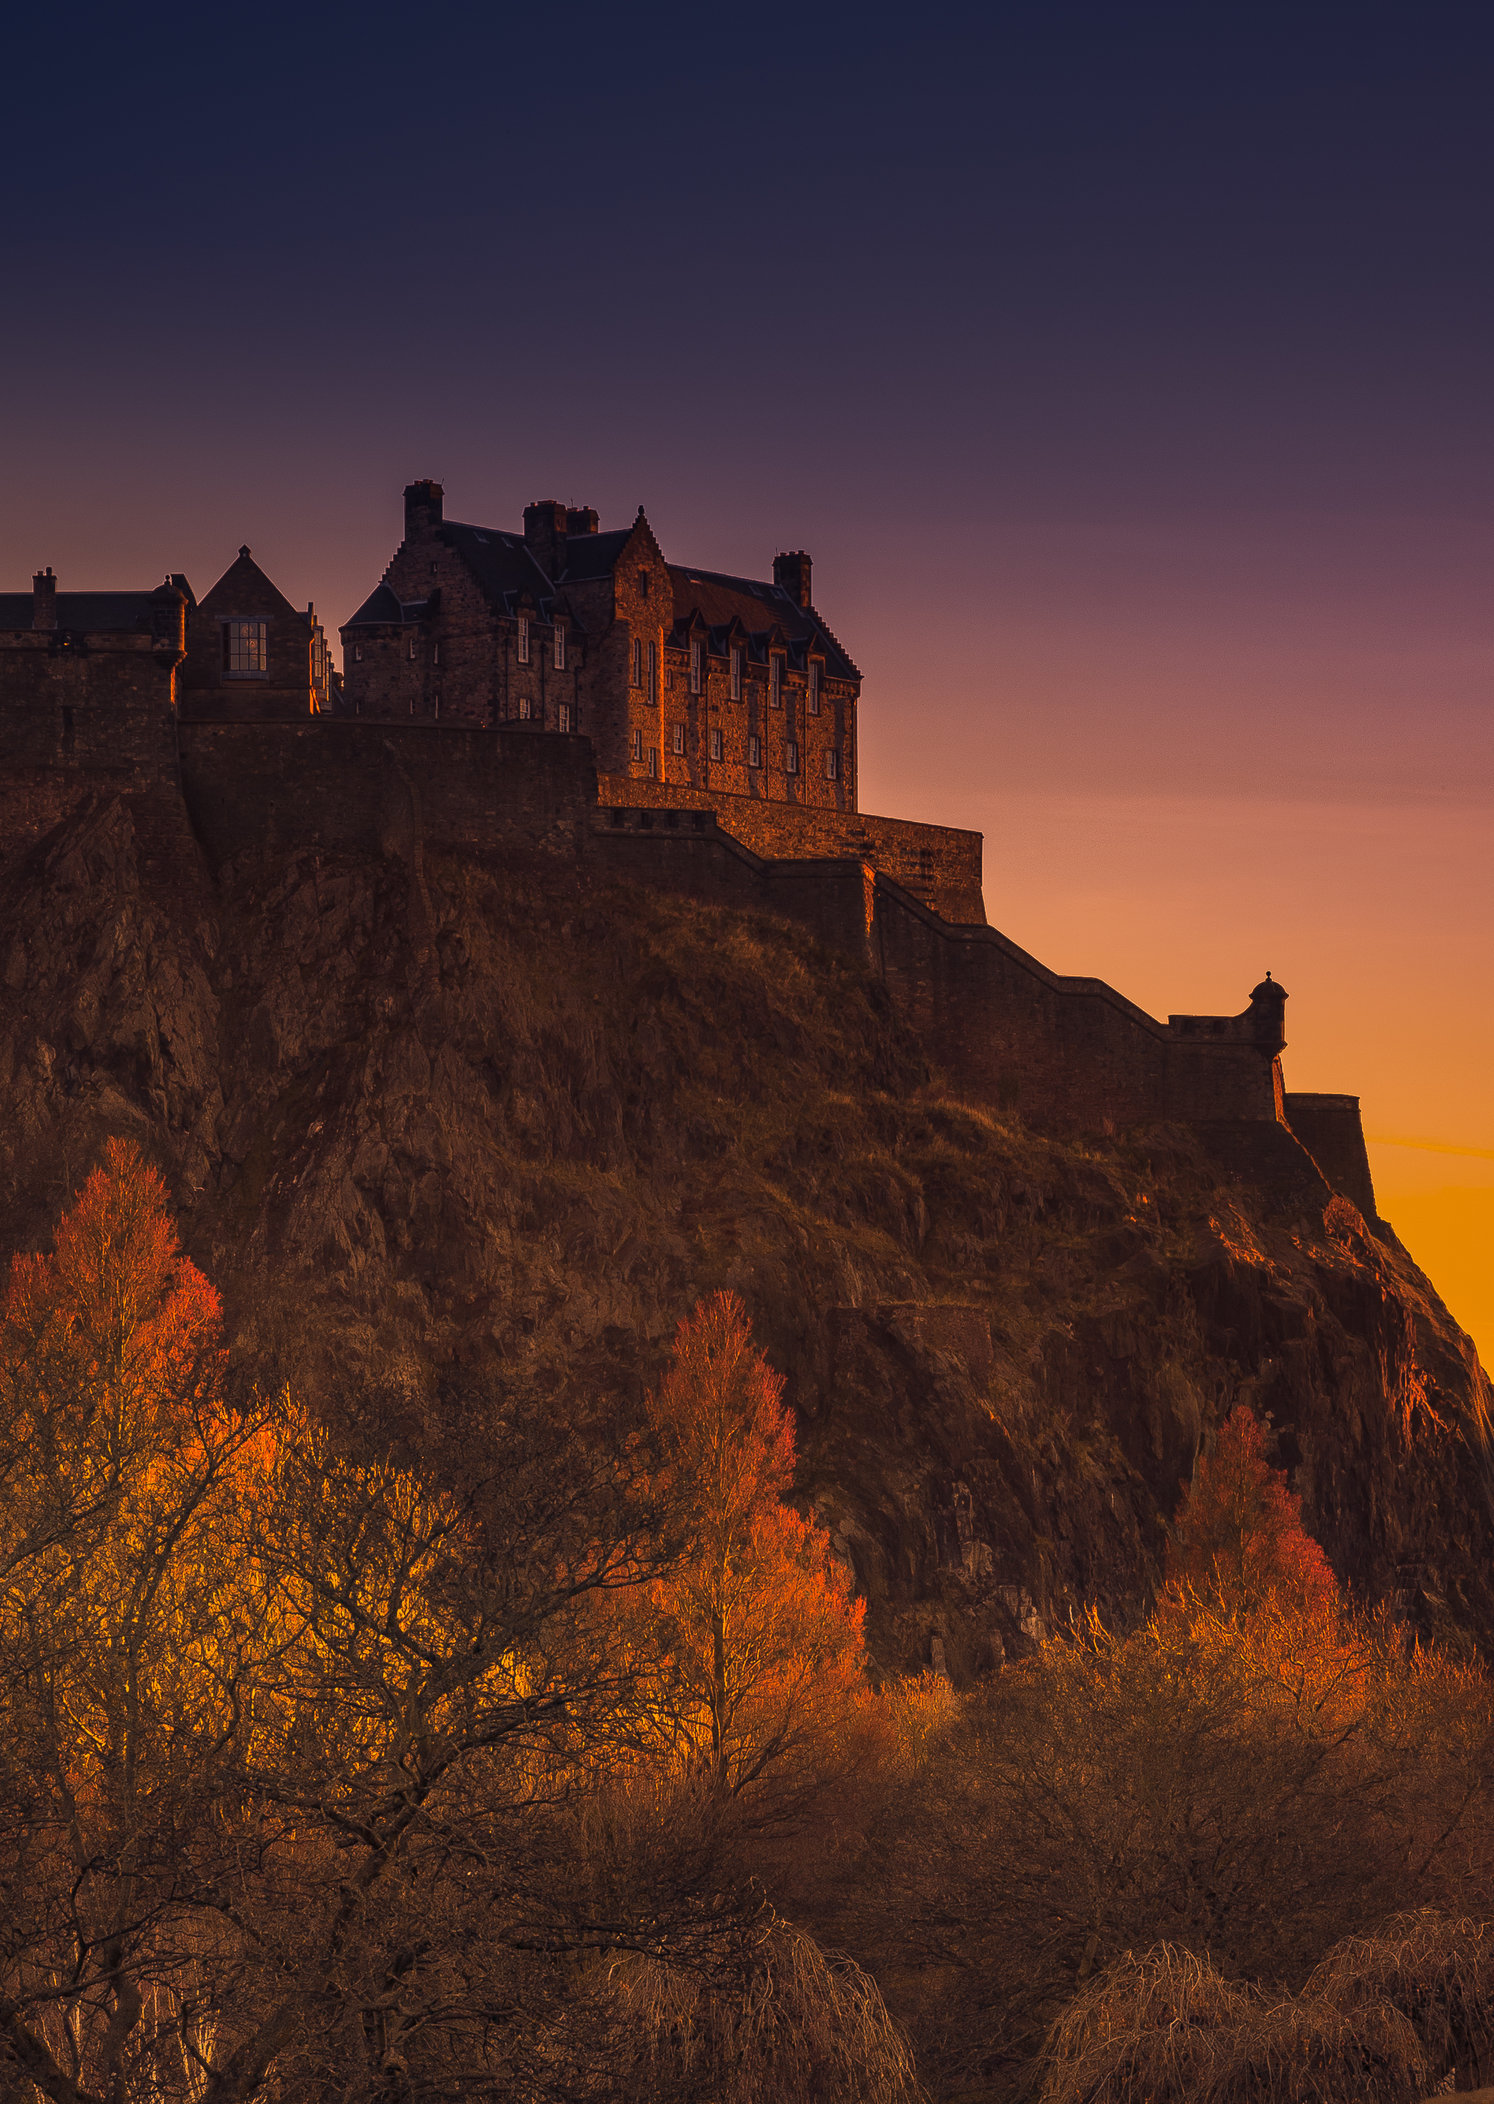 Edinburgh Castle-MASTER COPY.jpg